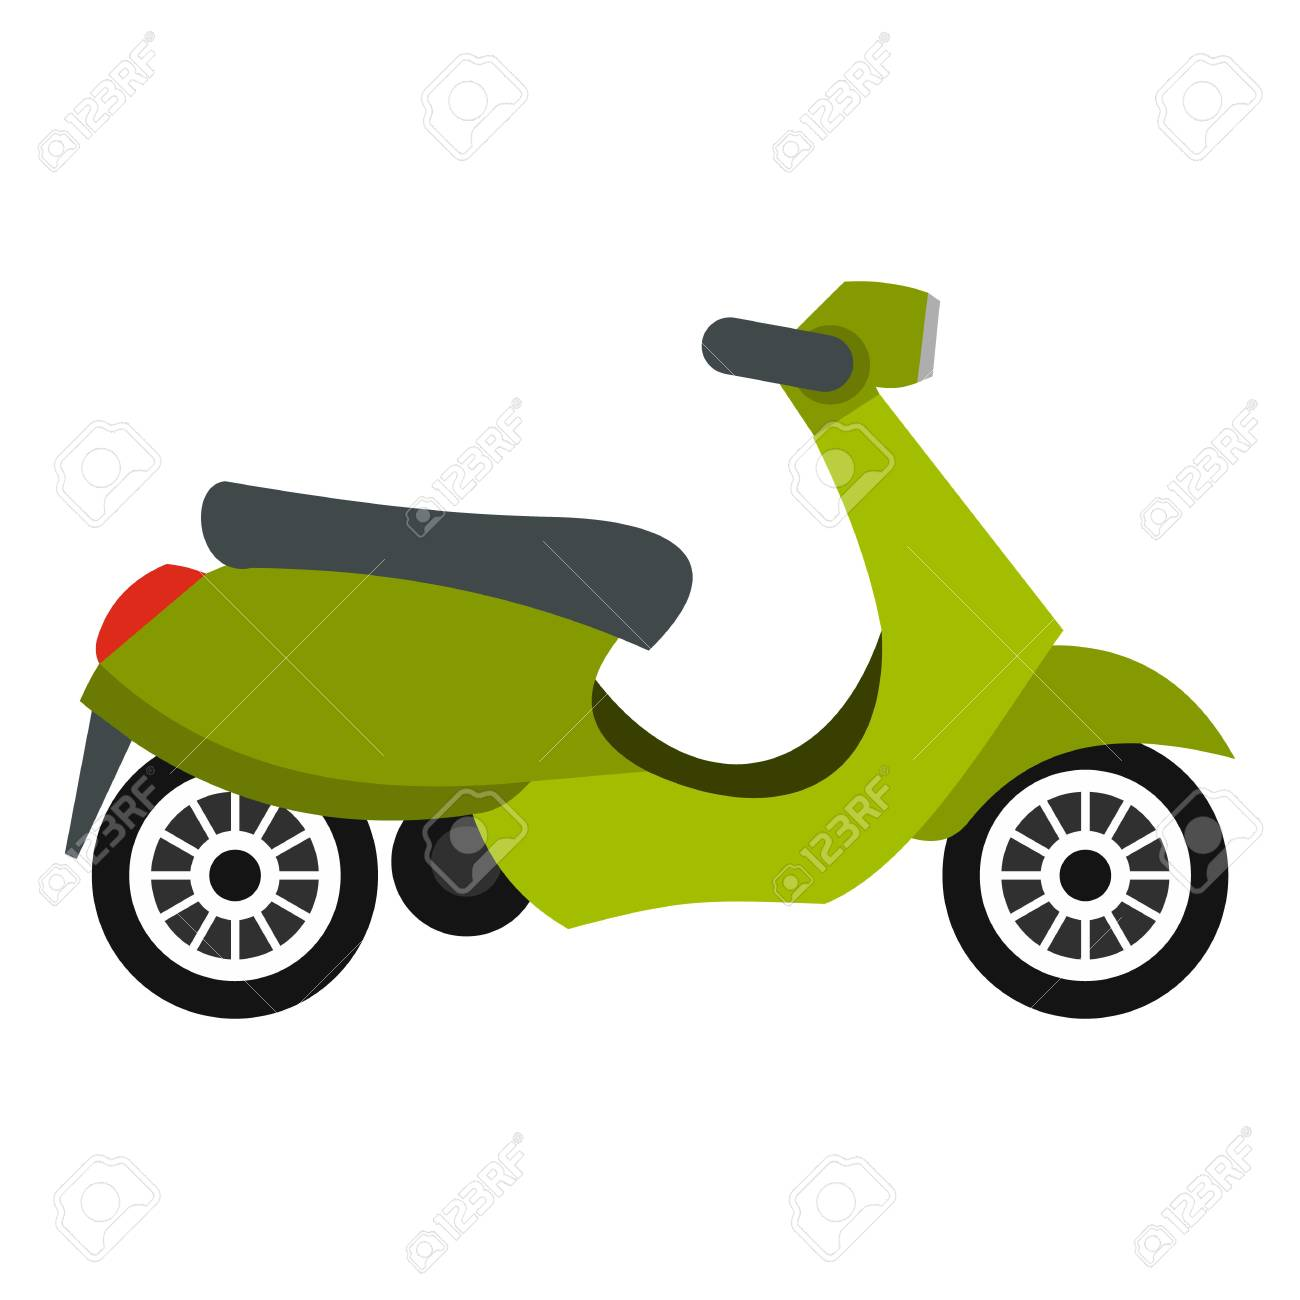 scooter icon flat illustration of scooter vector icon for web royalty free cliparts vectors and stock illustration image 64818480 scooter icon flat illustration of scooter vector icon for web